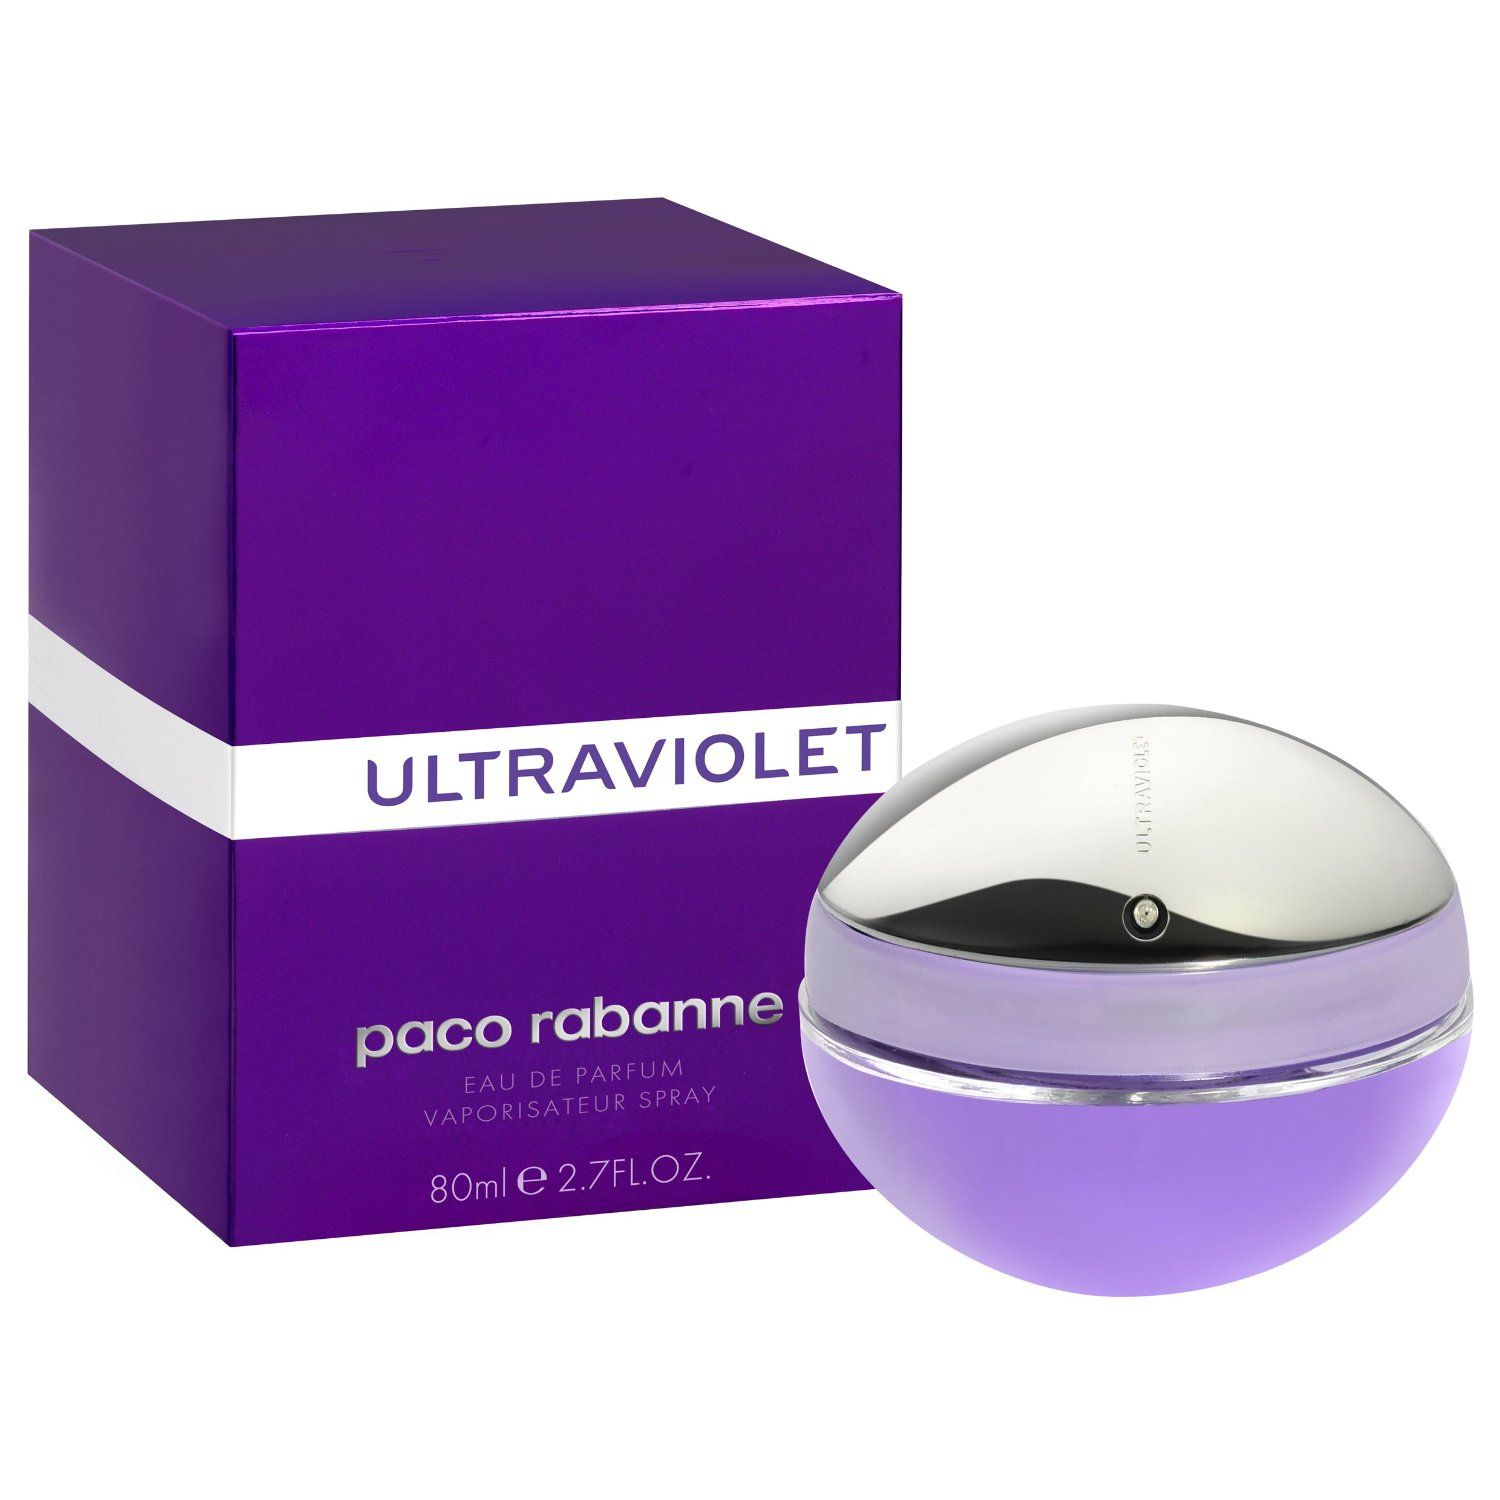 ultraviolet parfum pour femme par paco rabanne mmmmm. Black Bedroom Furniture Sets. Home Design Ideas